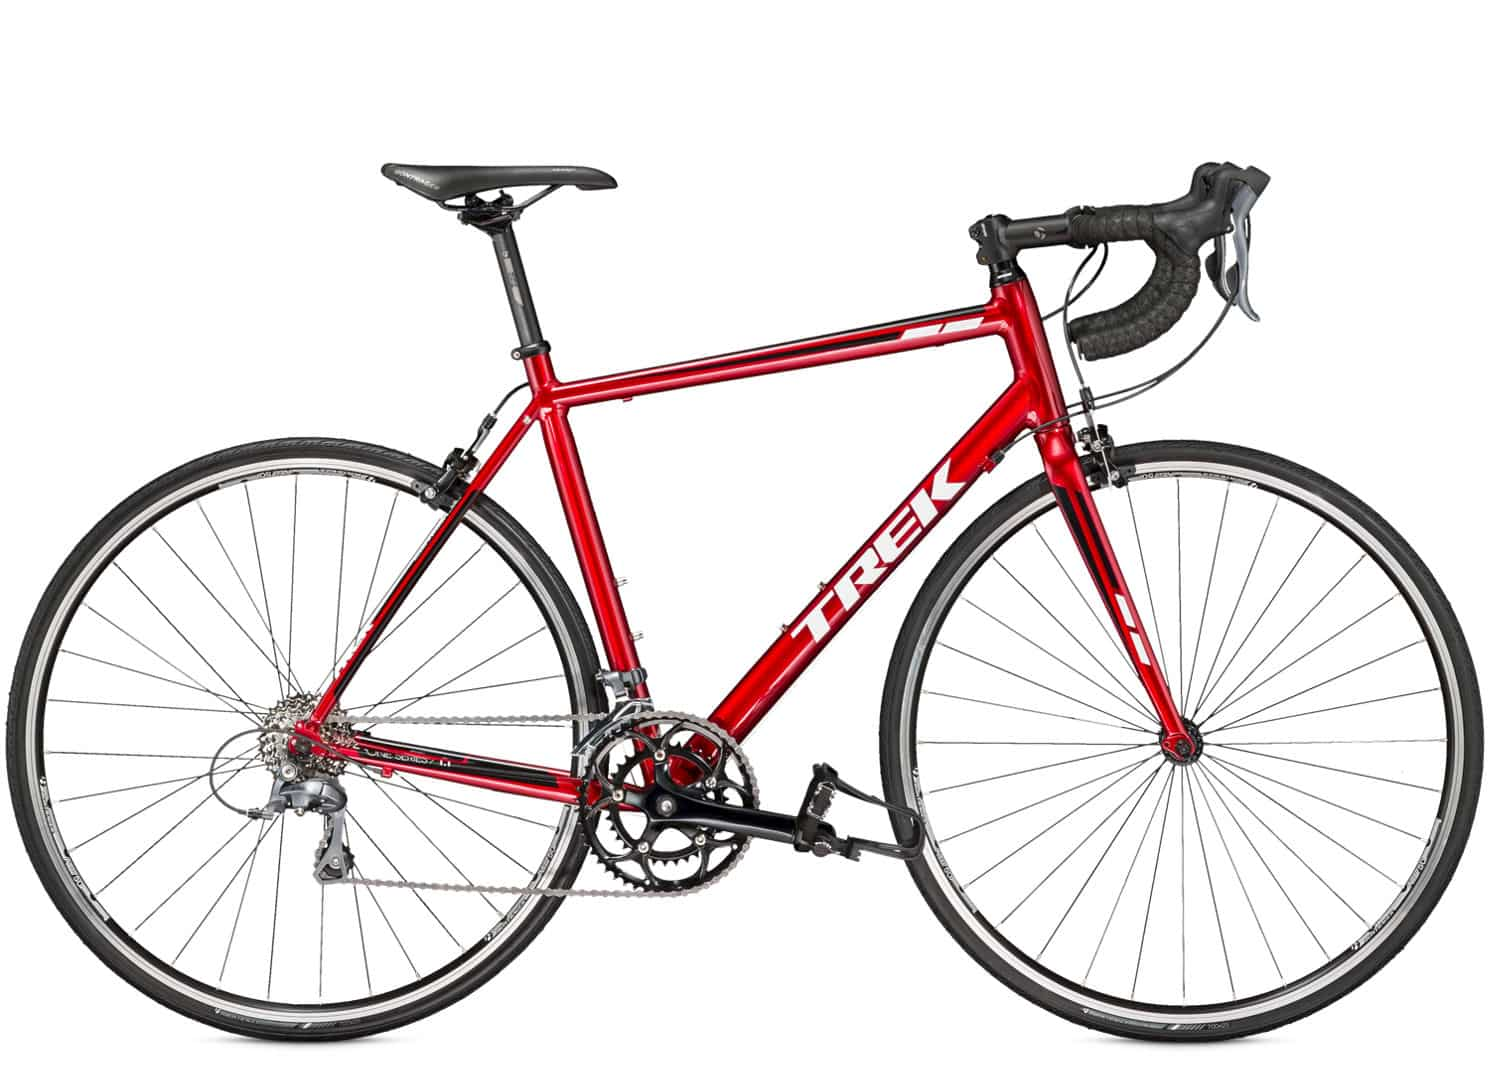 Trek 1 1 2015 Cycle Online | Best Price, Deals and Reviews